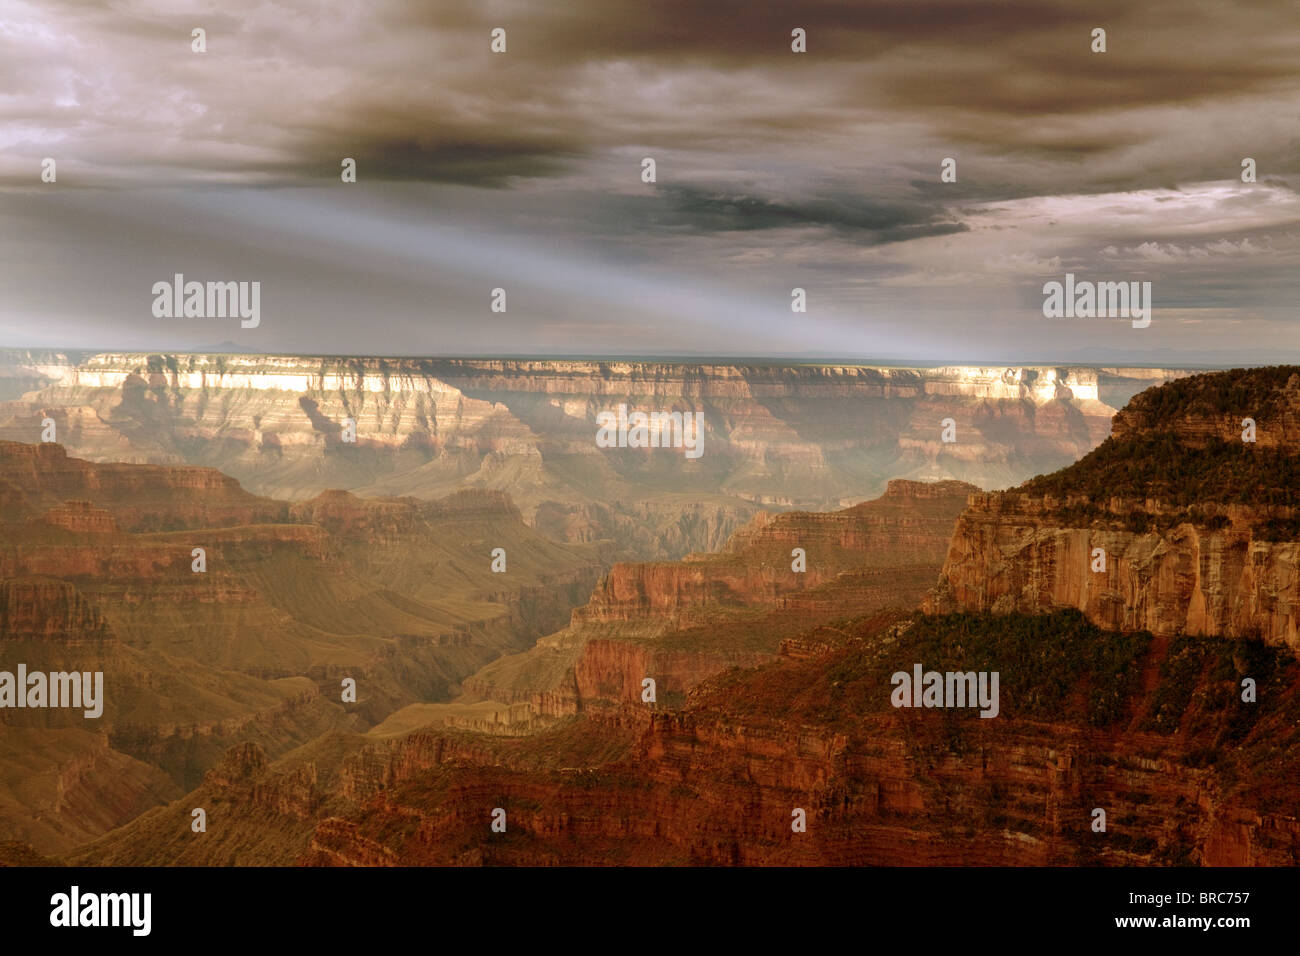 grand-canyon-at-sunrise-north-rim-arizona-usa-BRC757.jpg